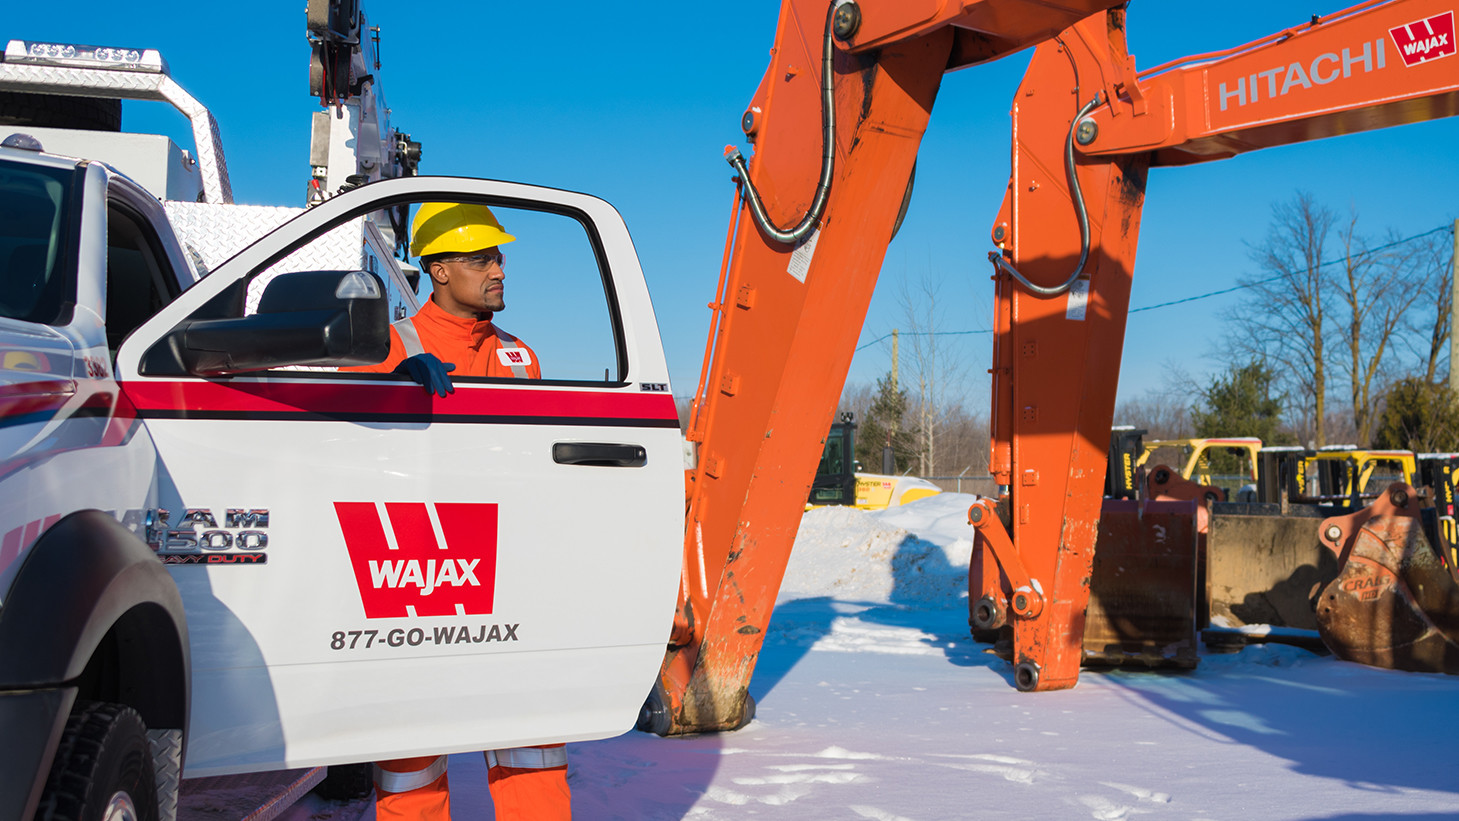 October 2020 Job Postings @ Wajax – New Job Opportunities In Lachine, Fort St. John, Quebec City, Langley, etc – Apply Today!